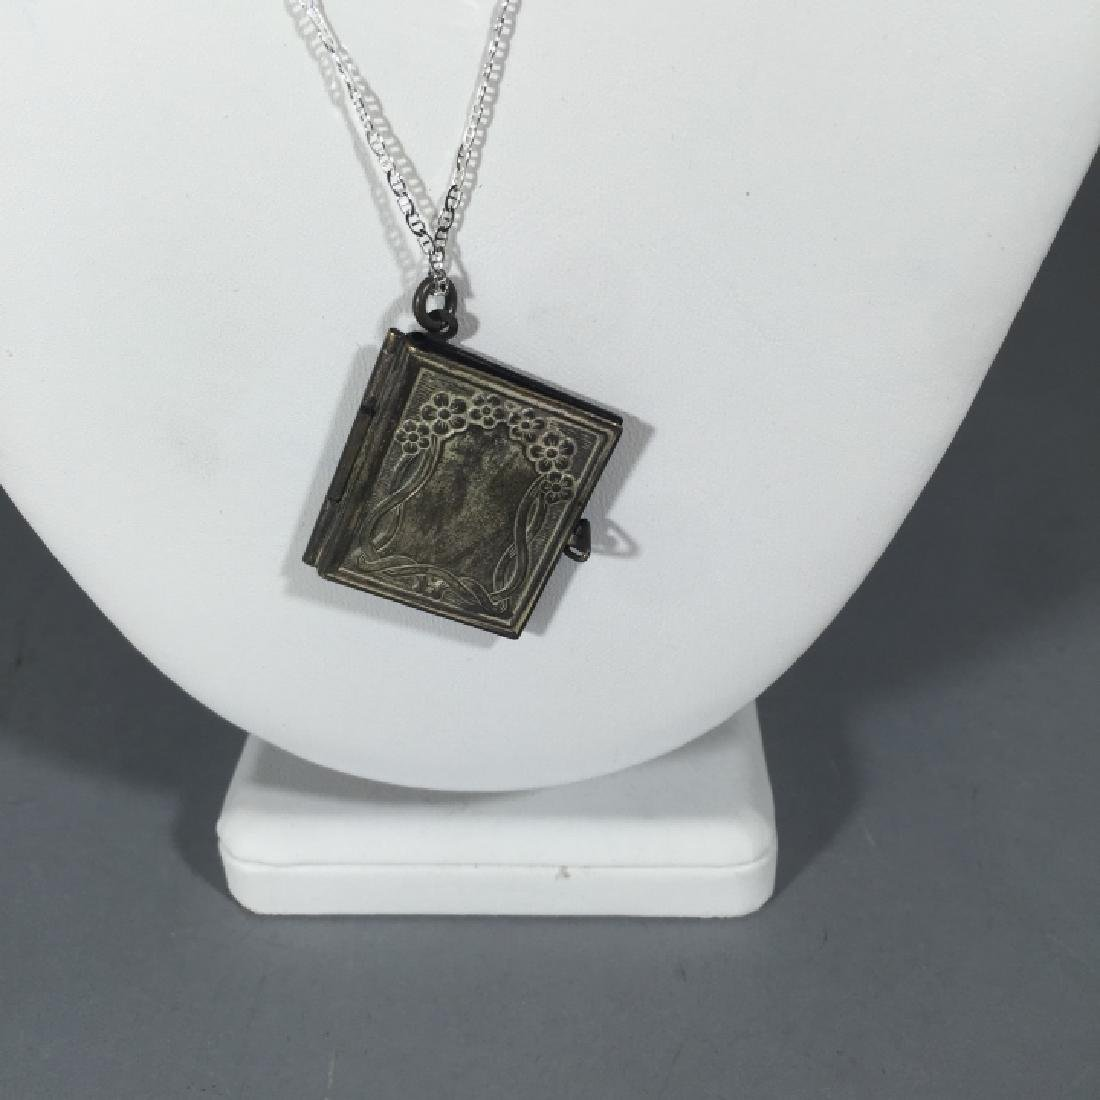 Antique Book Form Locket on Sterling Silver Chain - 3